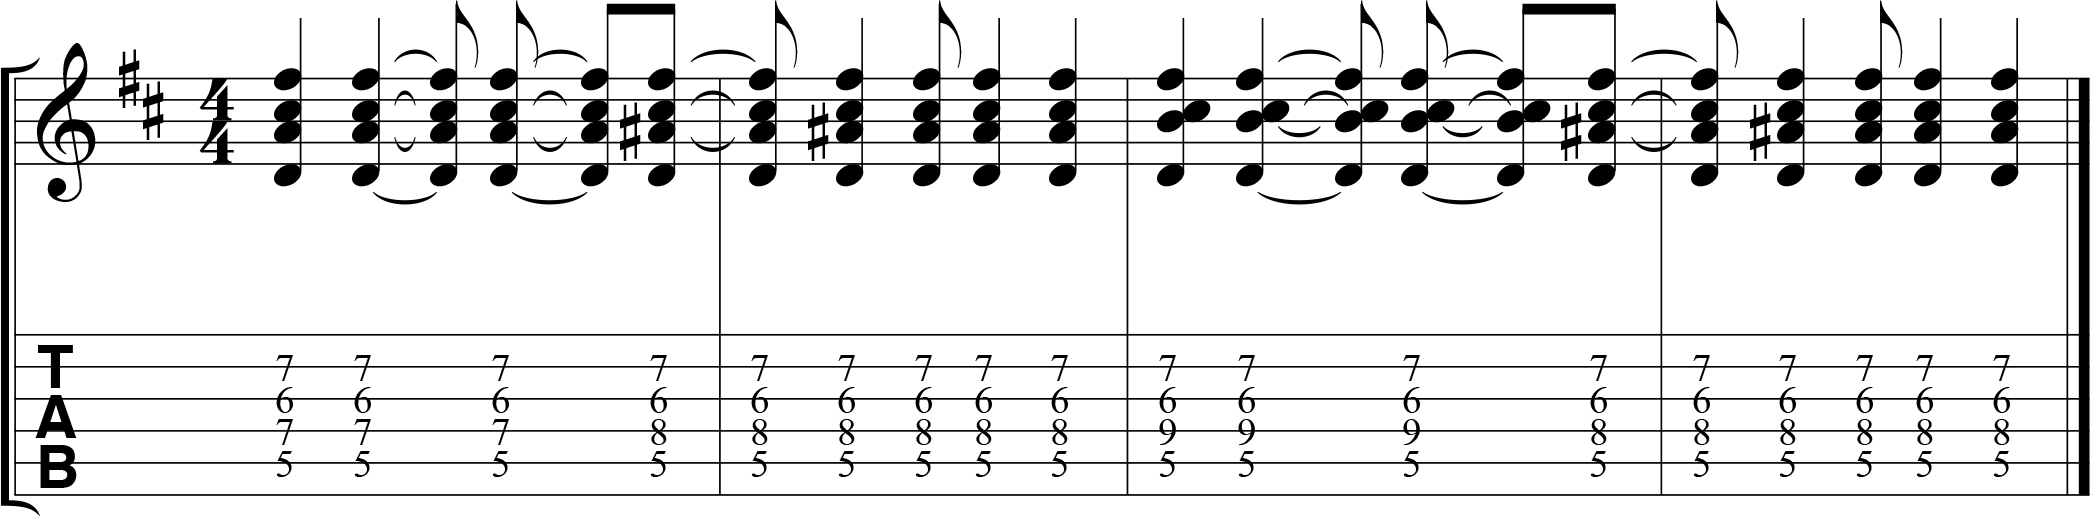 Guitar fingerpicking lesson all-together.